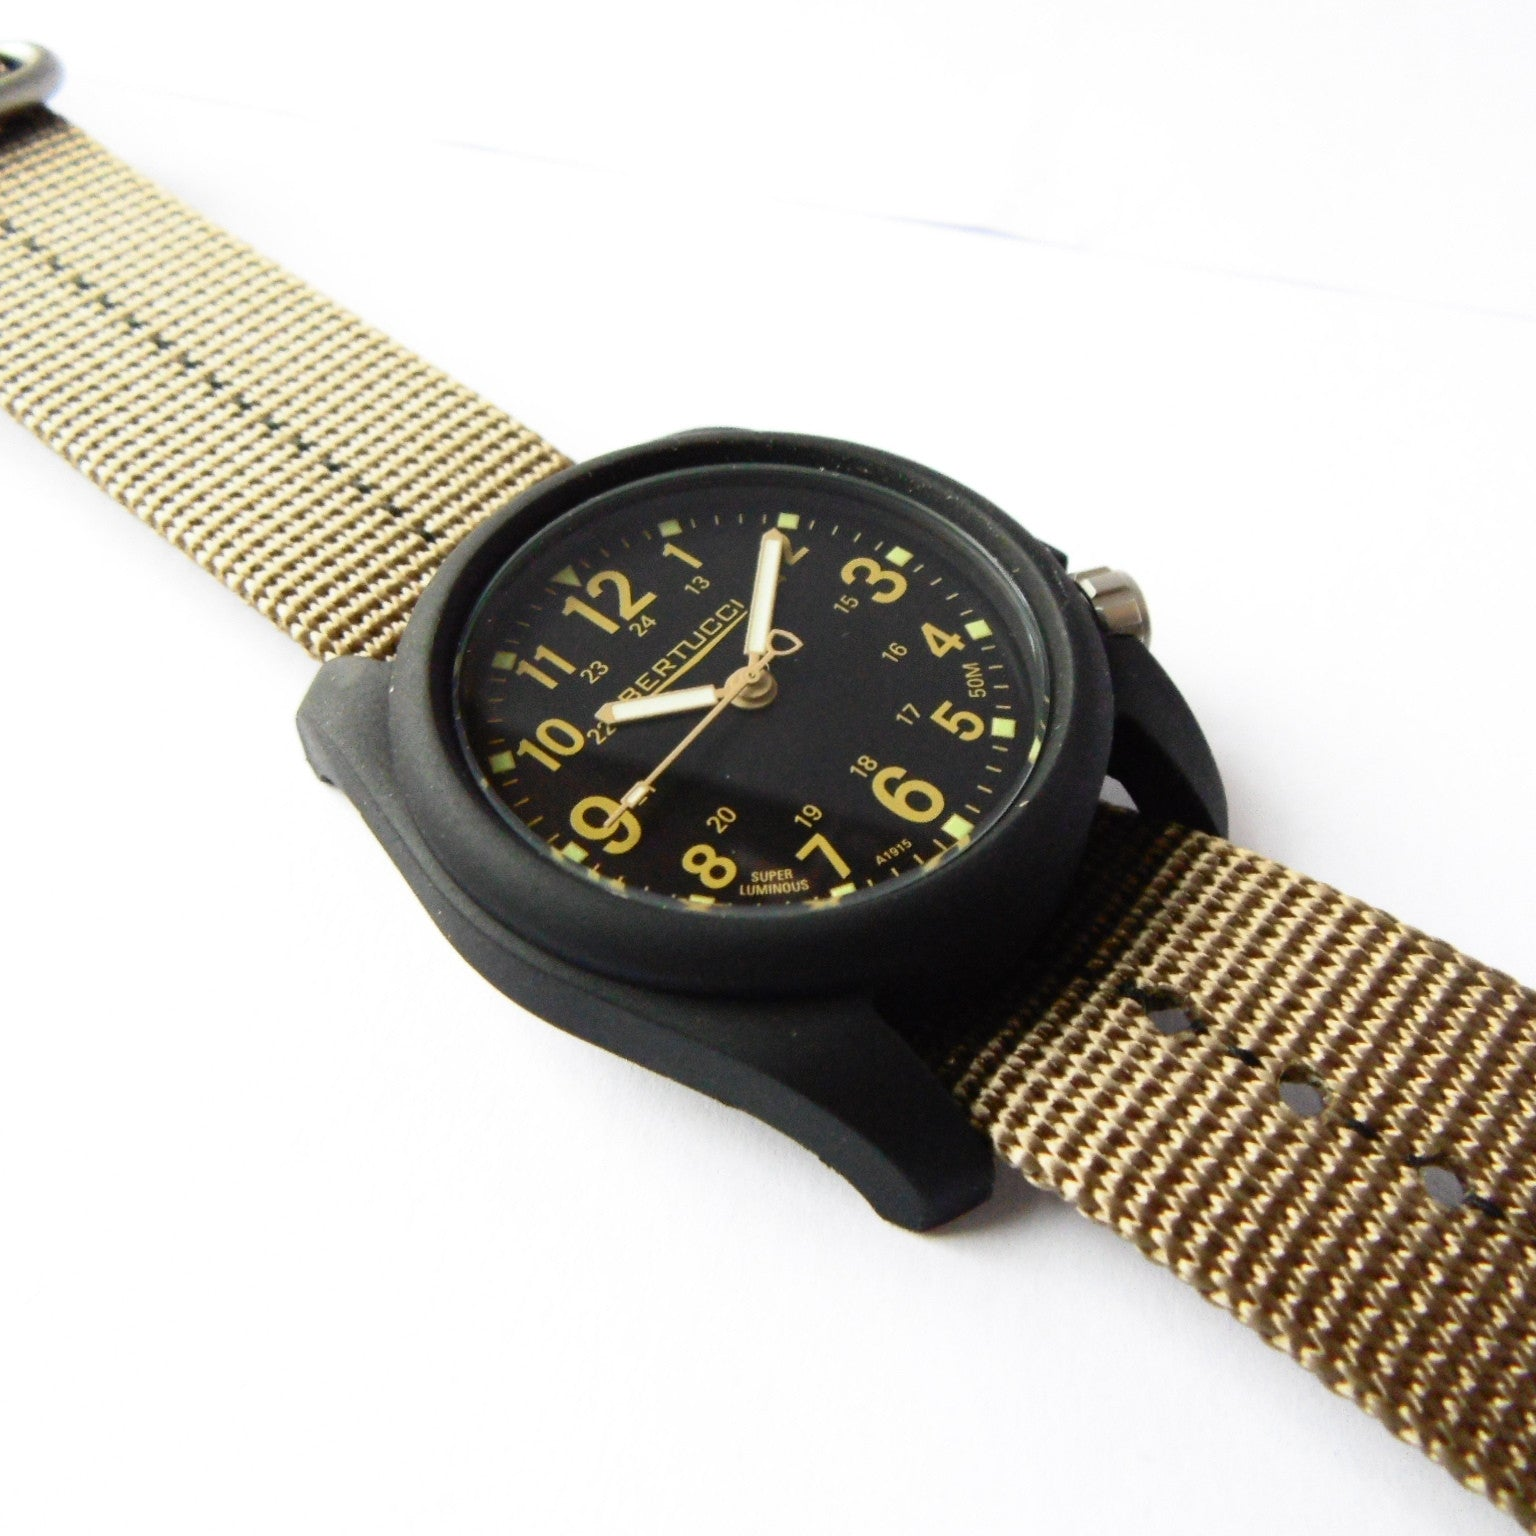 Bertucci DX3 Plus Field Resin Watch (Dash-Striped Desert Nylon Strap) 11041 - Watchfinder General - UK suppliers of Russian Vostok Parnis Watches MWC G10  - 2